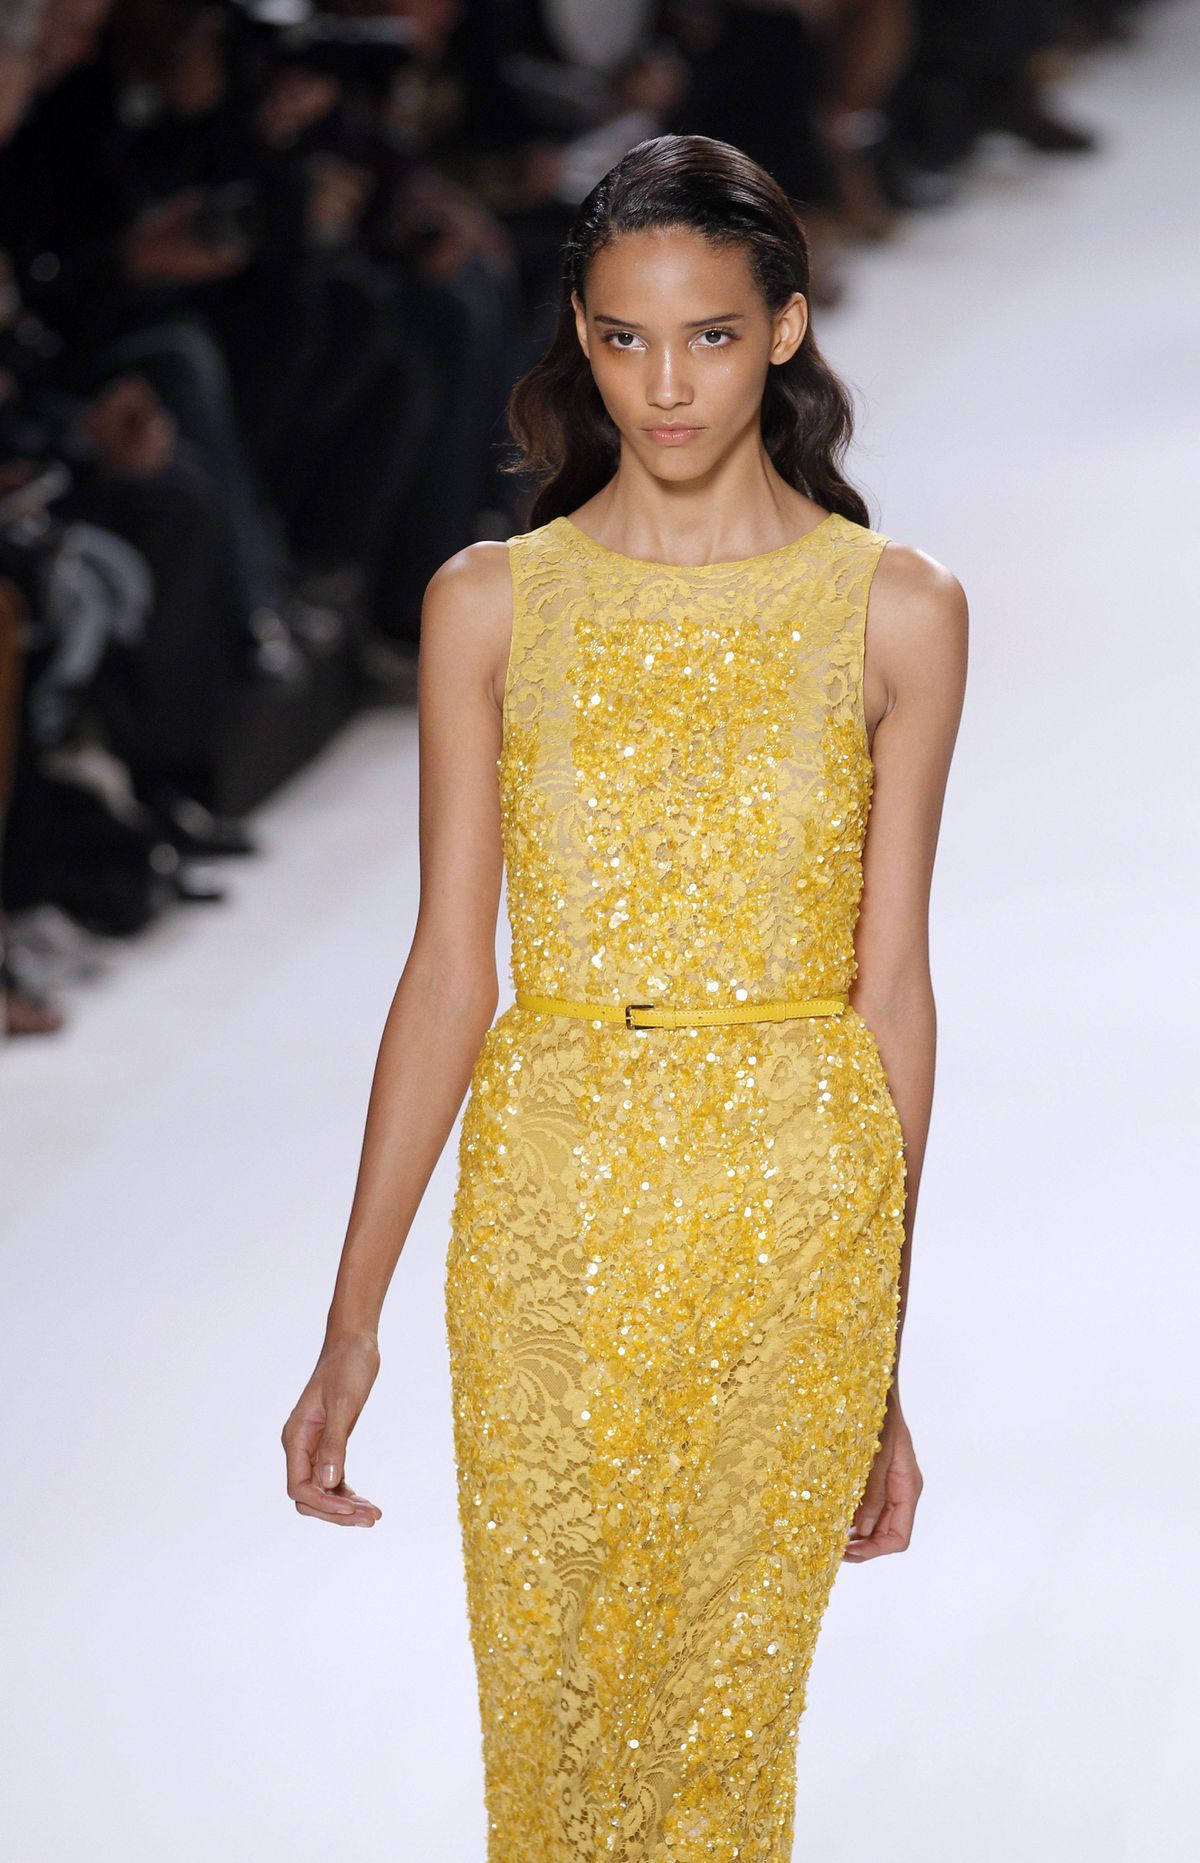 Ditto this gown. But at least sequins in yellow ochre are more distinctive. Here's where you play the role of stylist and decide which actress would wear it best.